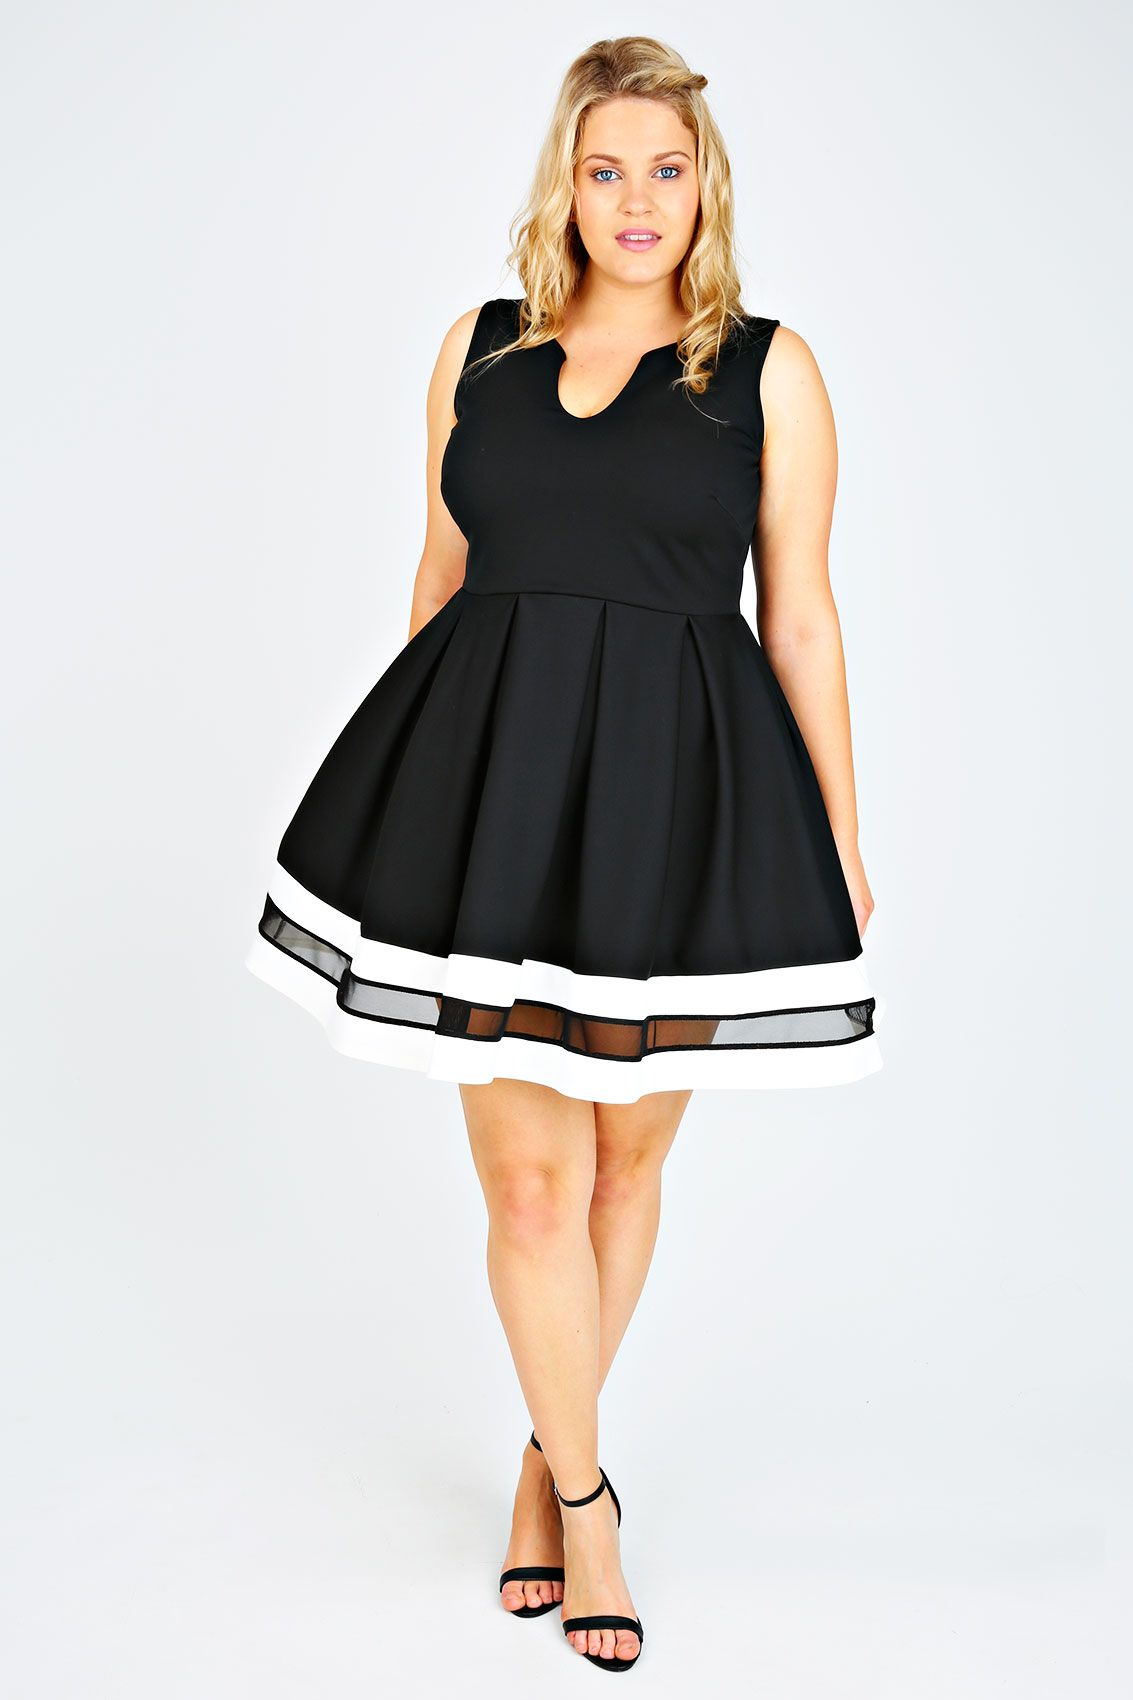 Black, White & Mesh Block Skater Dress plus size 14,16,18,20,22,24 ...